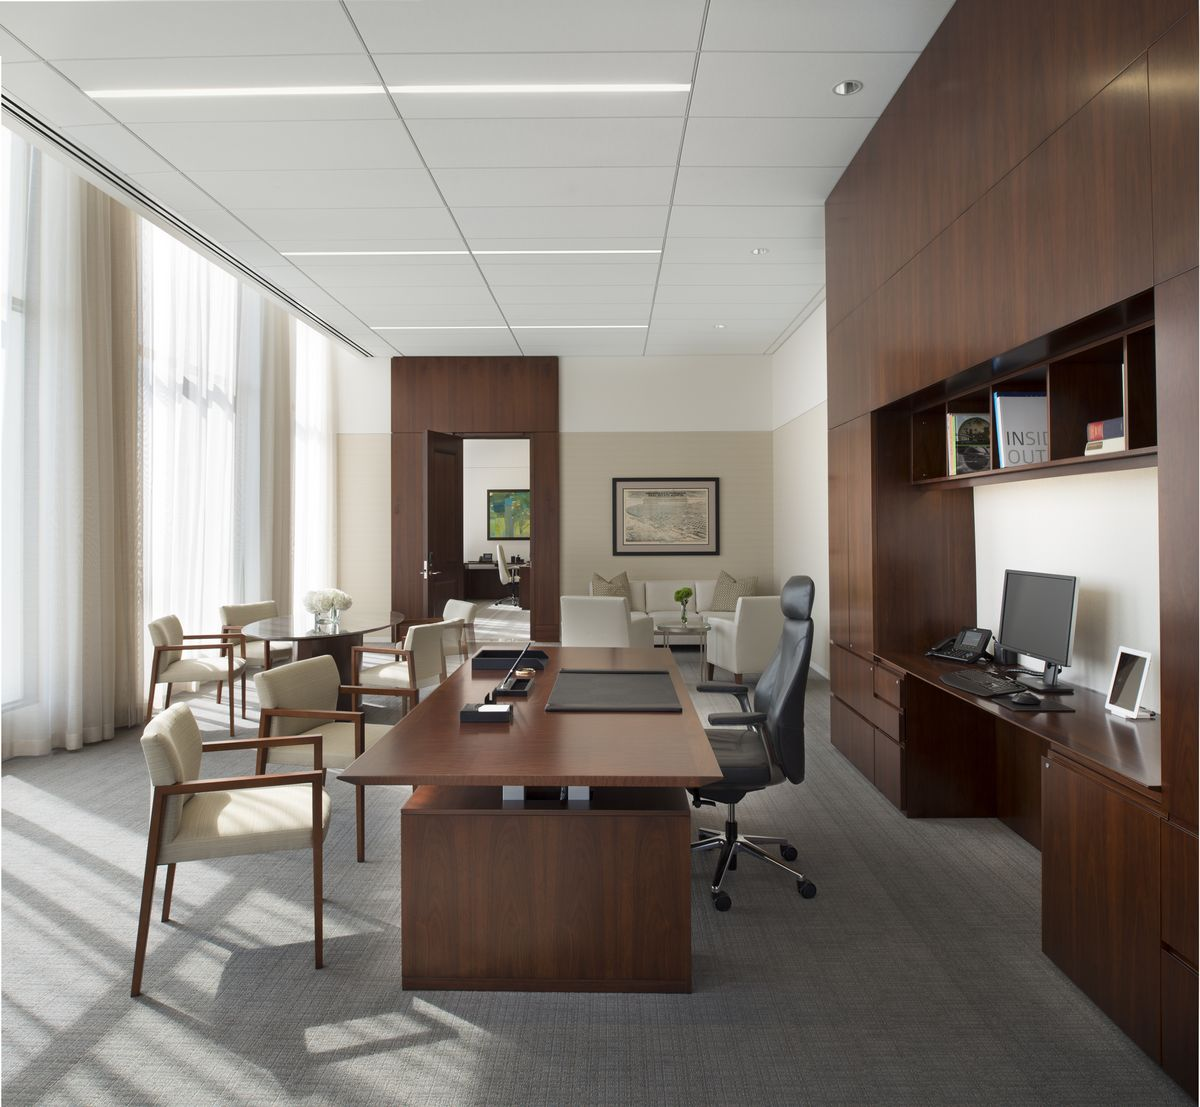 ceo office luxury office and office interior design on. Black Bedroom Furniture Sets. Home Design Ideas